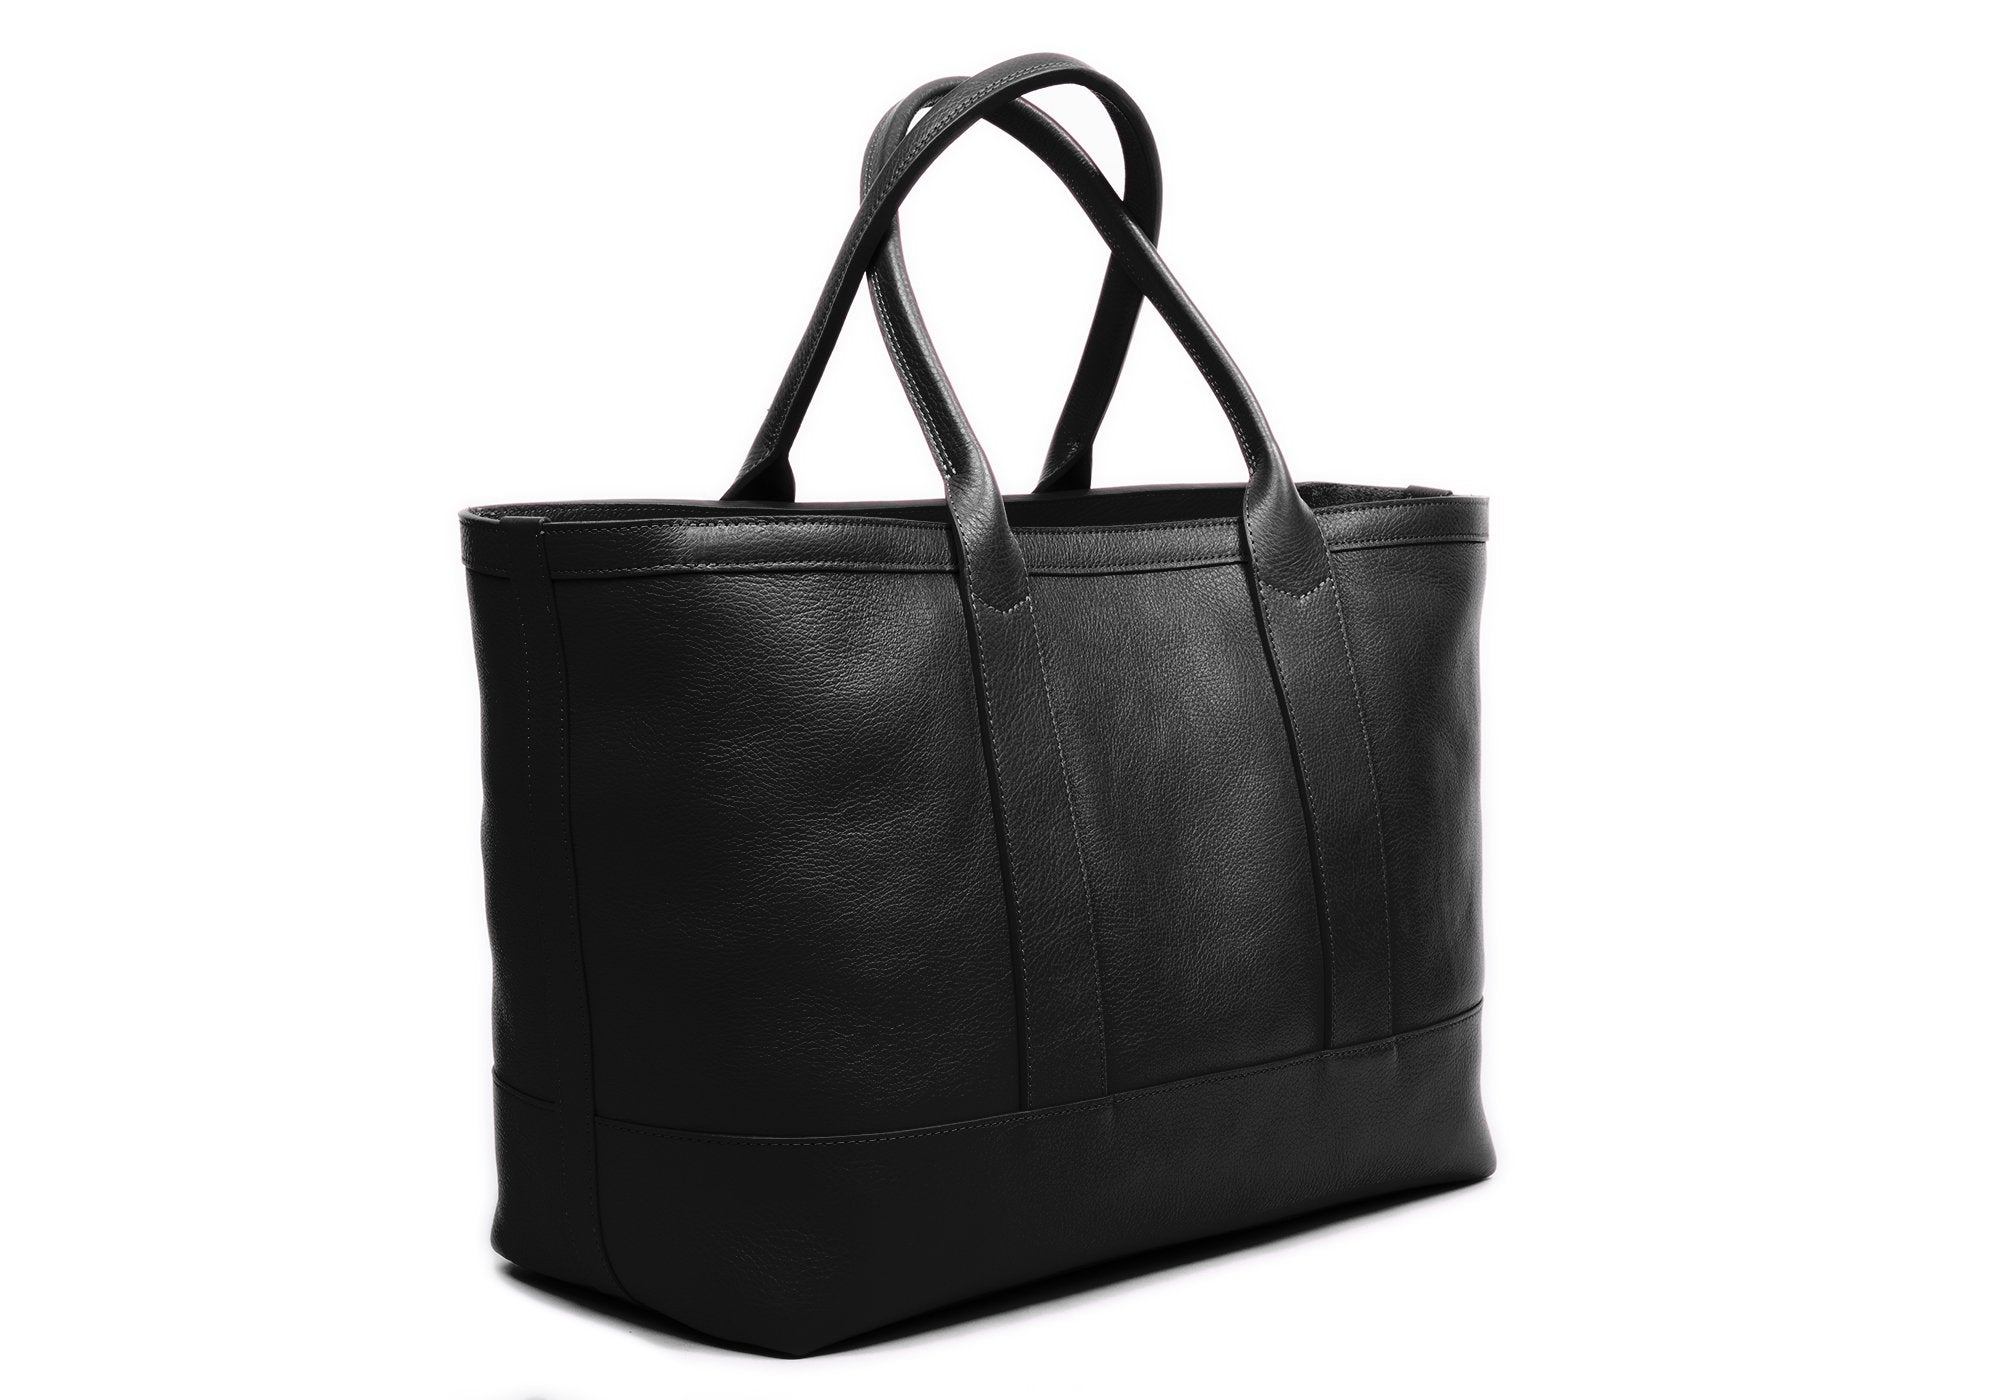 Medium Leather Tote Black